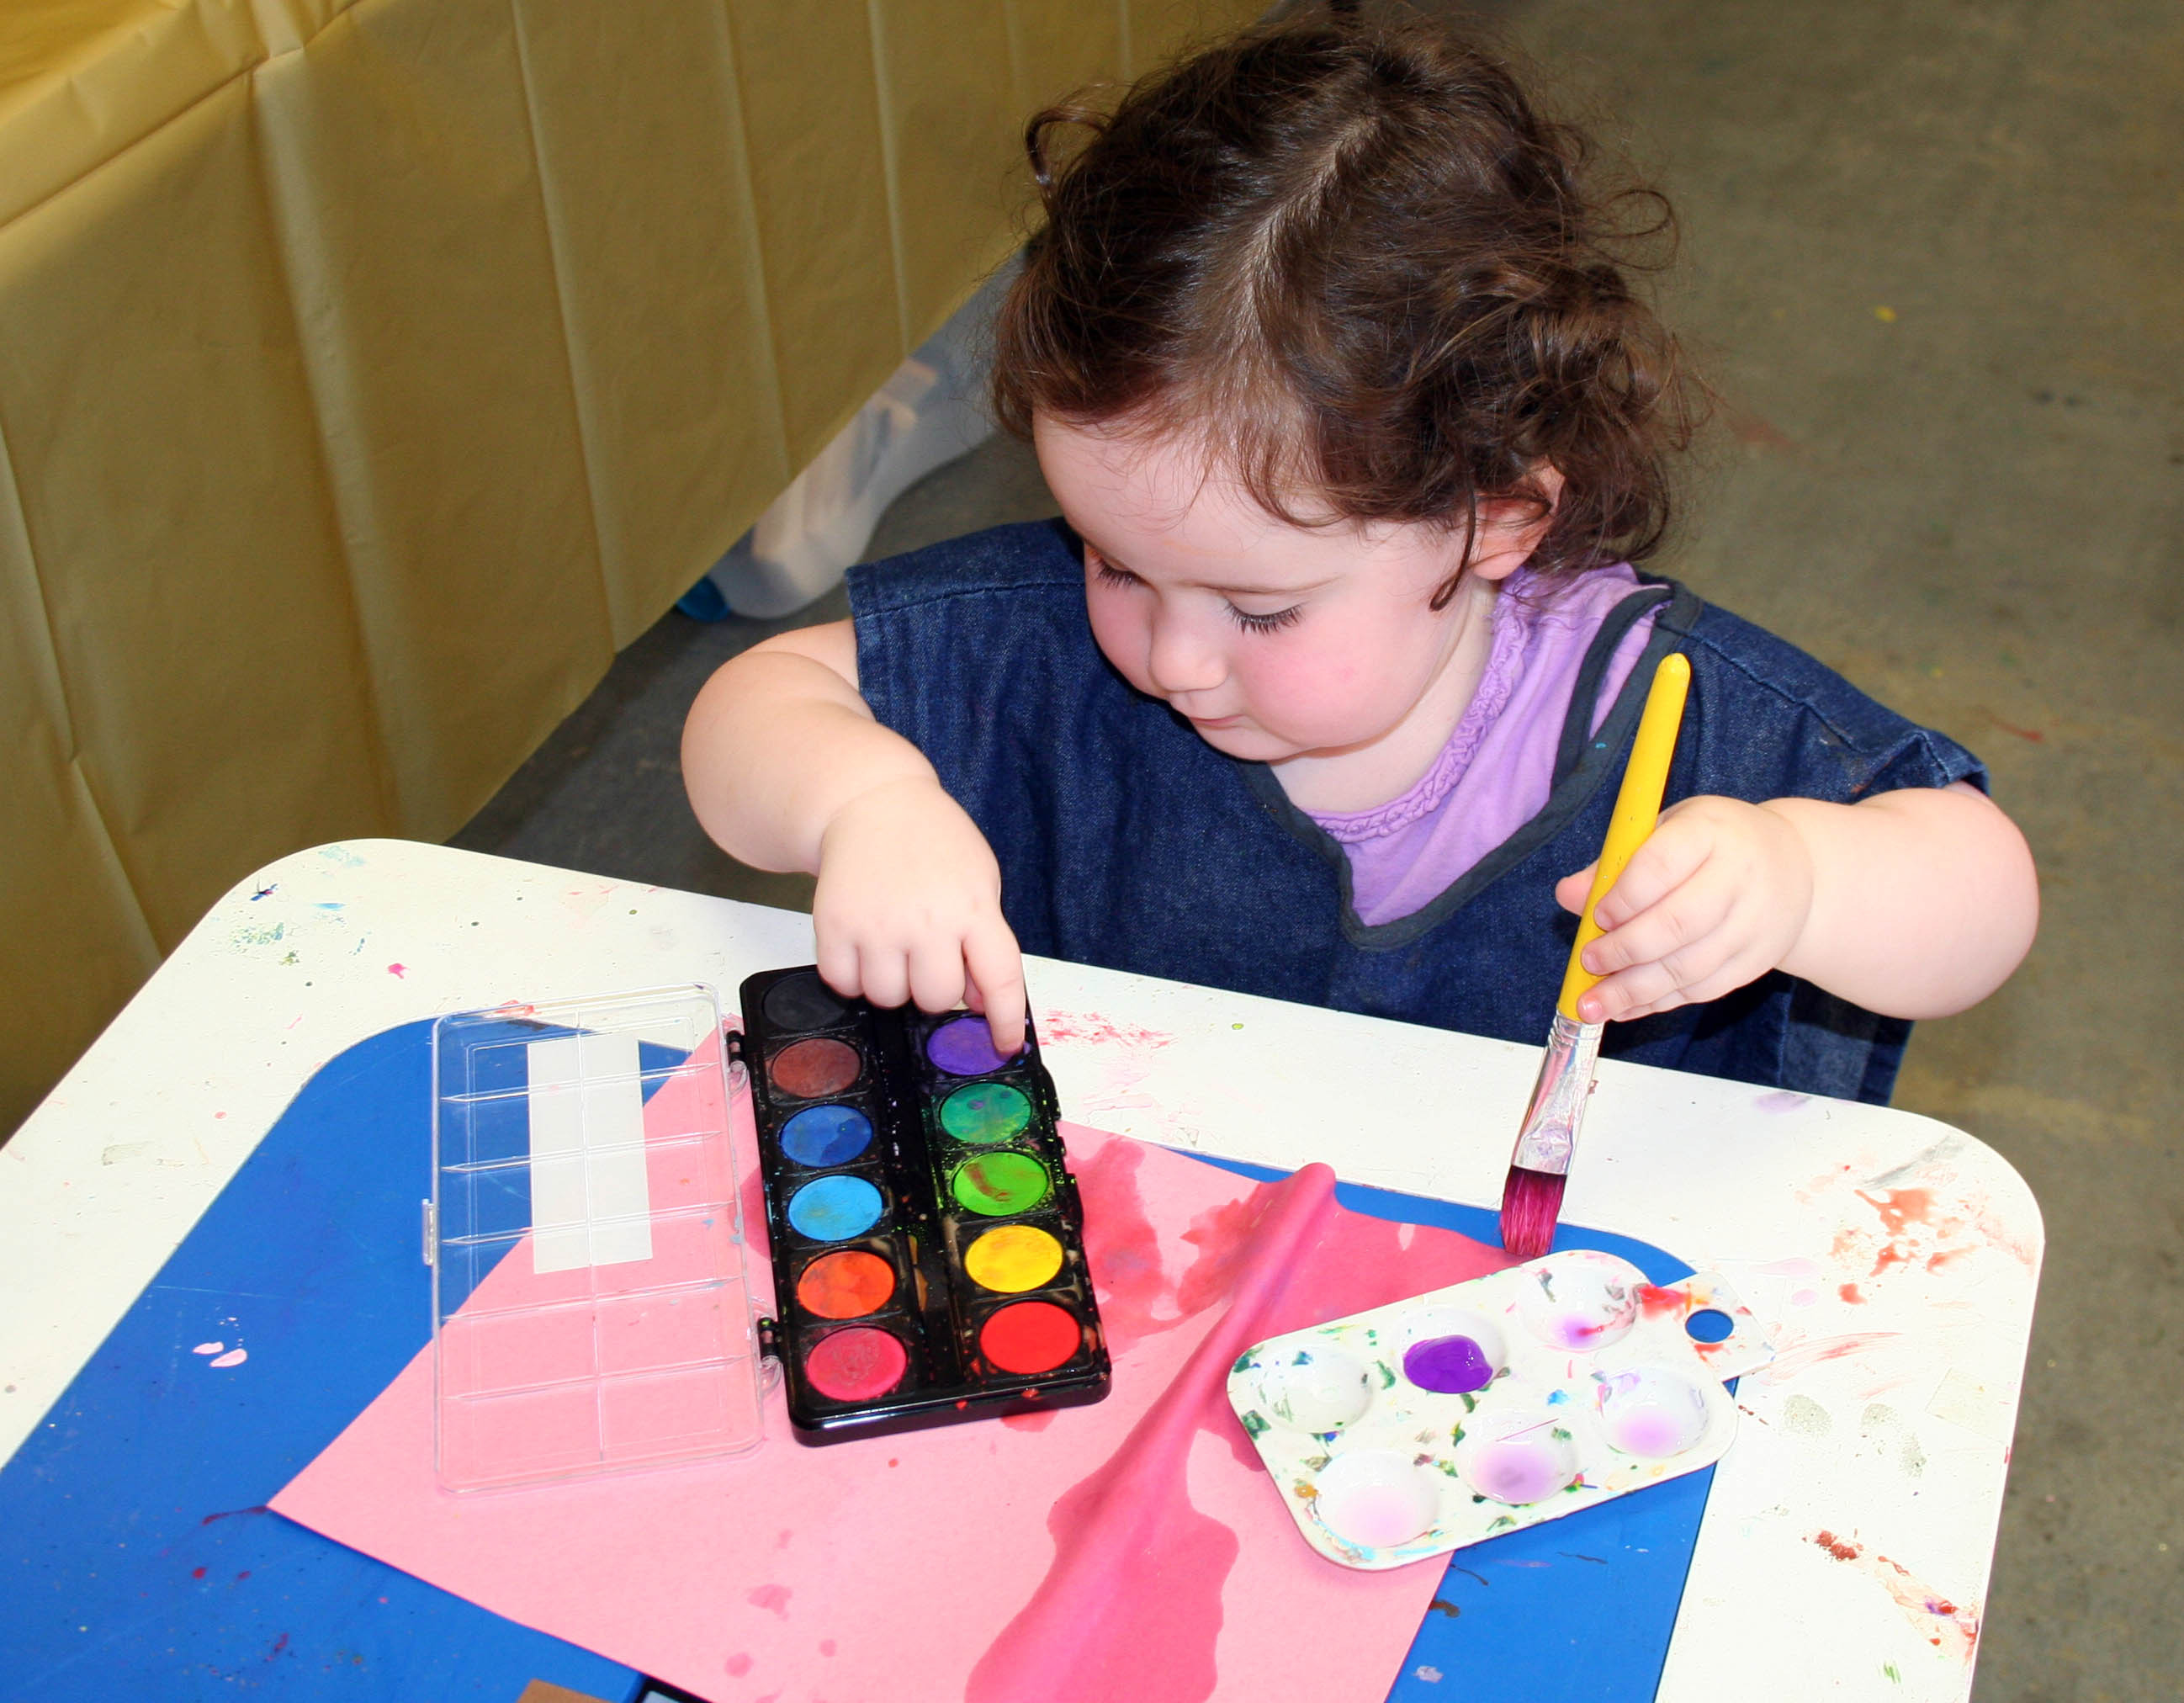 d5337692ef32d5b1b7e7_Baby_making_craft_6-21-14.jpg